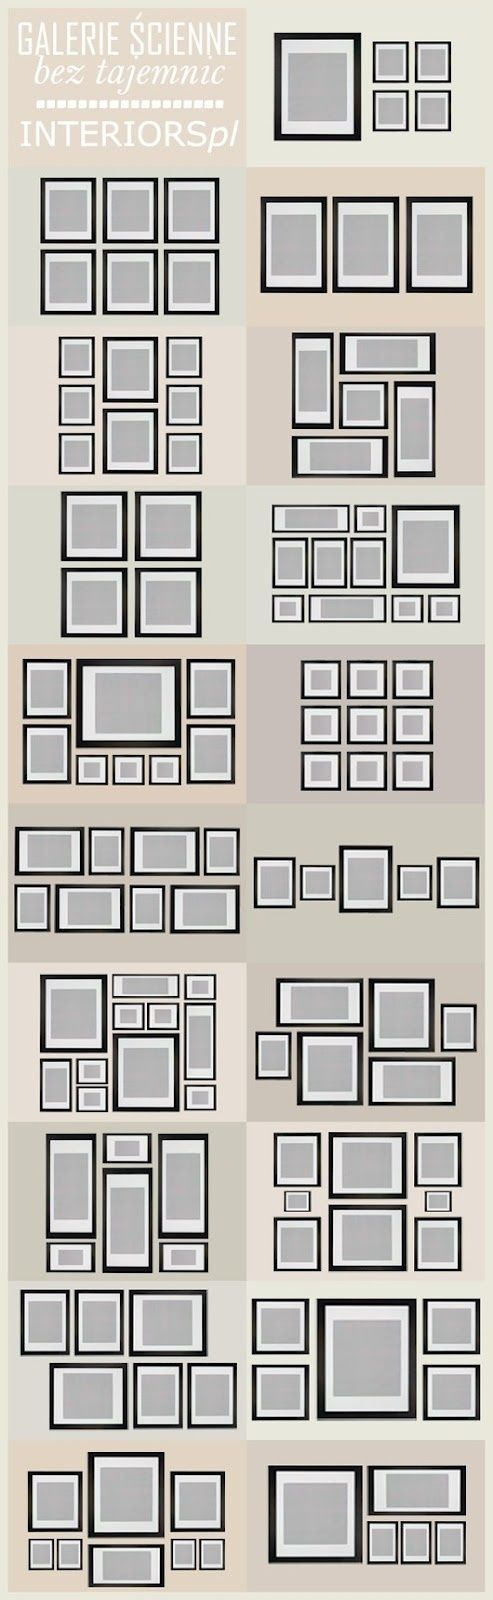 Picture Layout - lay out your pics as   shown on top of a piece of clear plastic. Lift each picture individually and   mark where you need to make a hole using pen on the plastic. Once all are drawn   on, remove pics and place plastic on wall, drill through each mark and hey   presto, each picture wall-mounted perfectly- need to do this in living   room